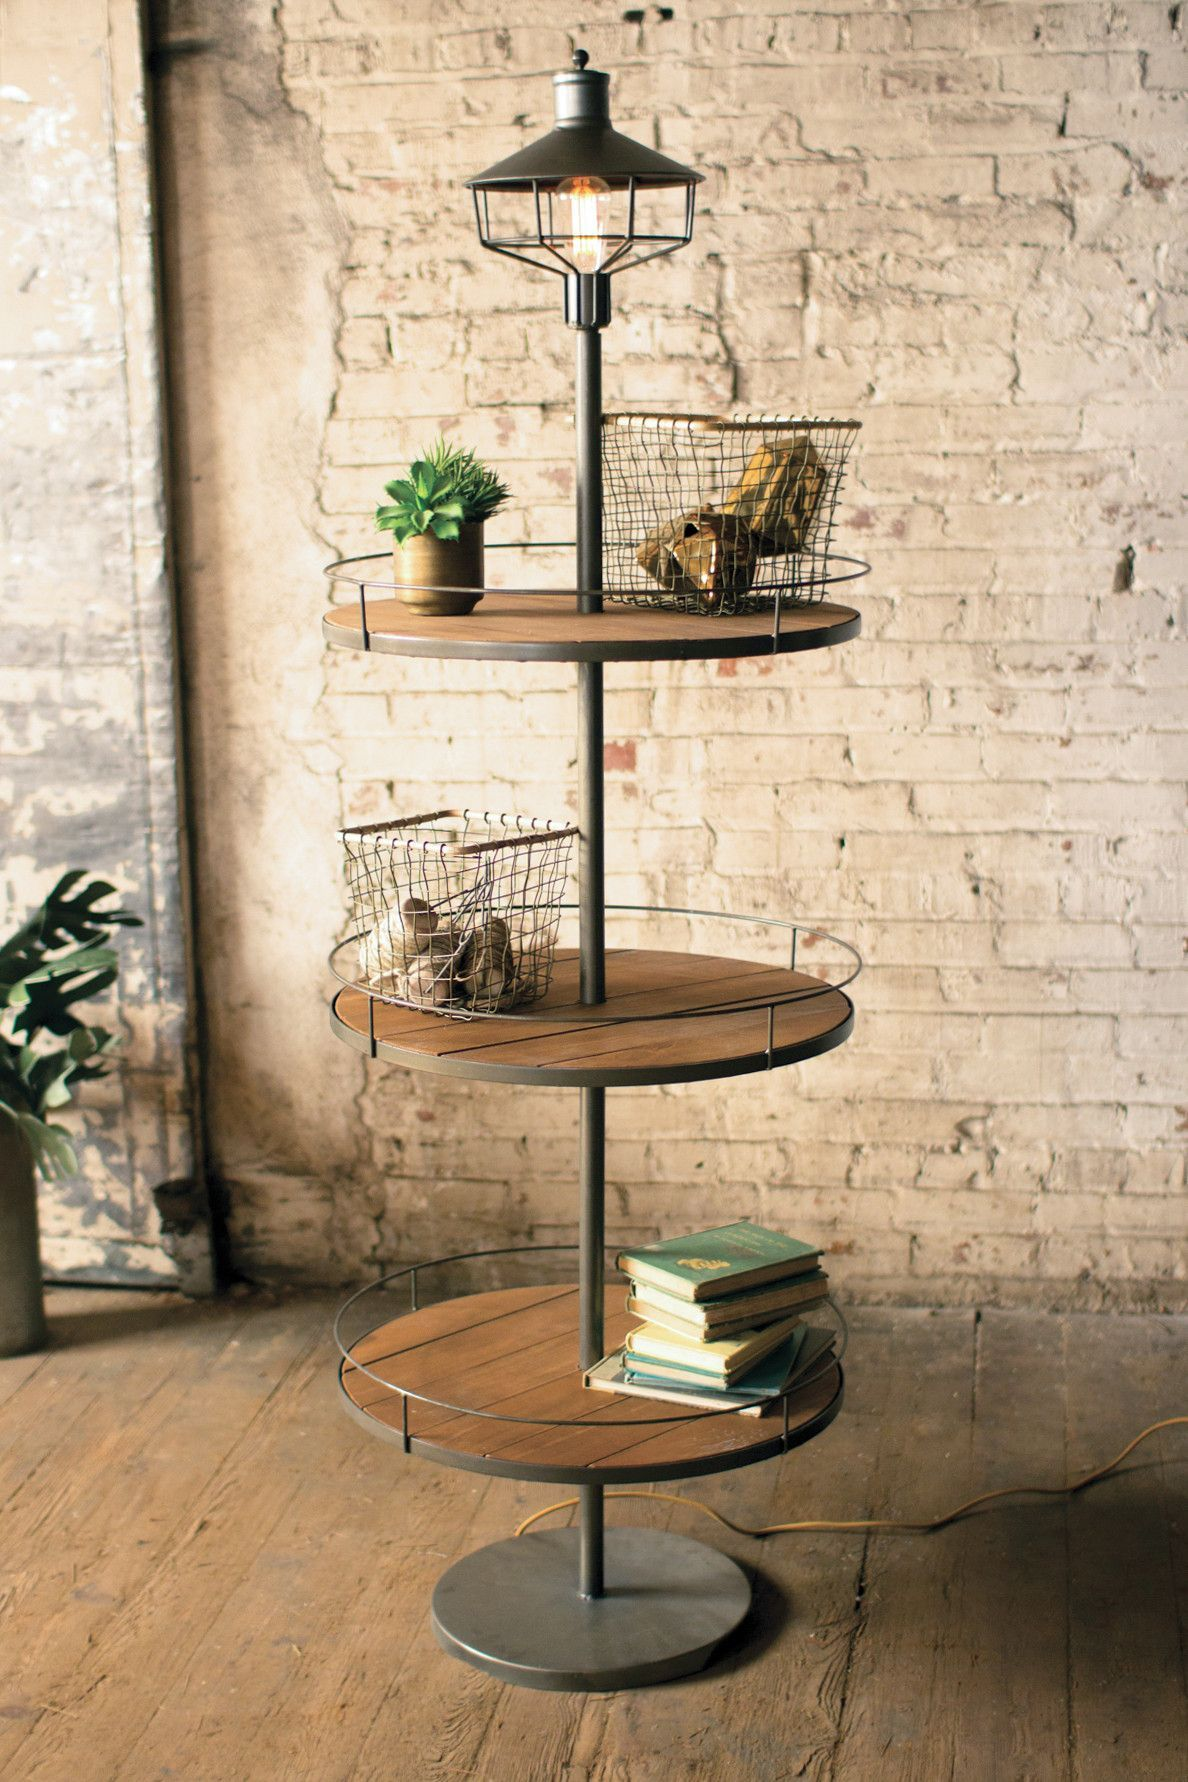 3 Tier Display Floor Lamp With Images Farmhouse Floor Lamps Floor Lamp With Shelves Diy Floor Lamp